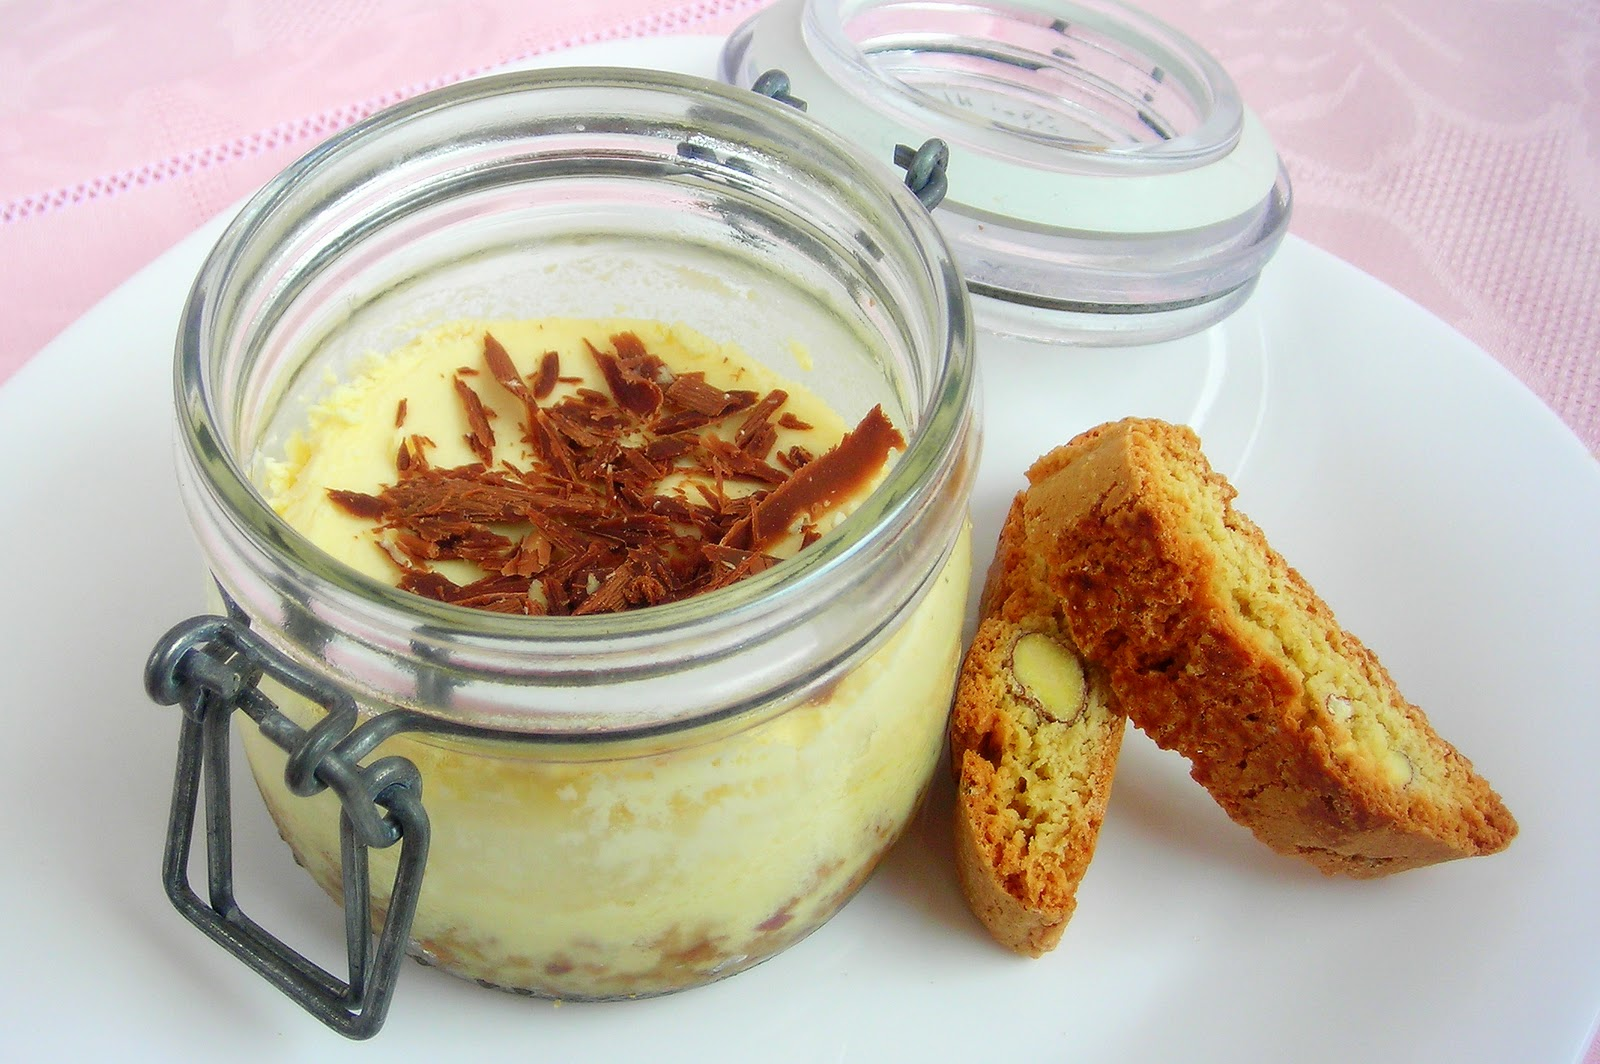 Simple Cake Recipes In Pressure Cooker: Limoncello Ricotta Cheesecake-in-a-jar